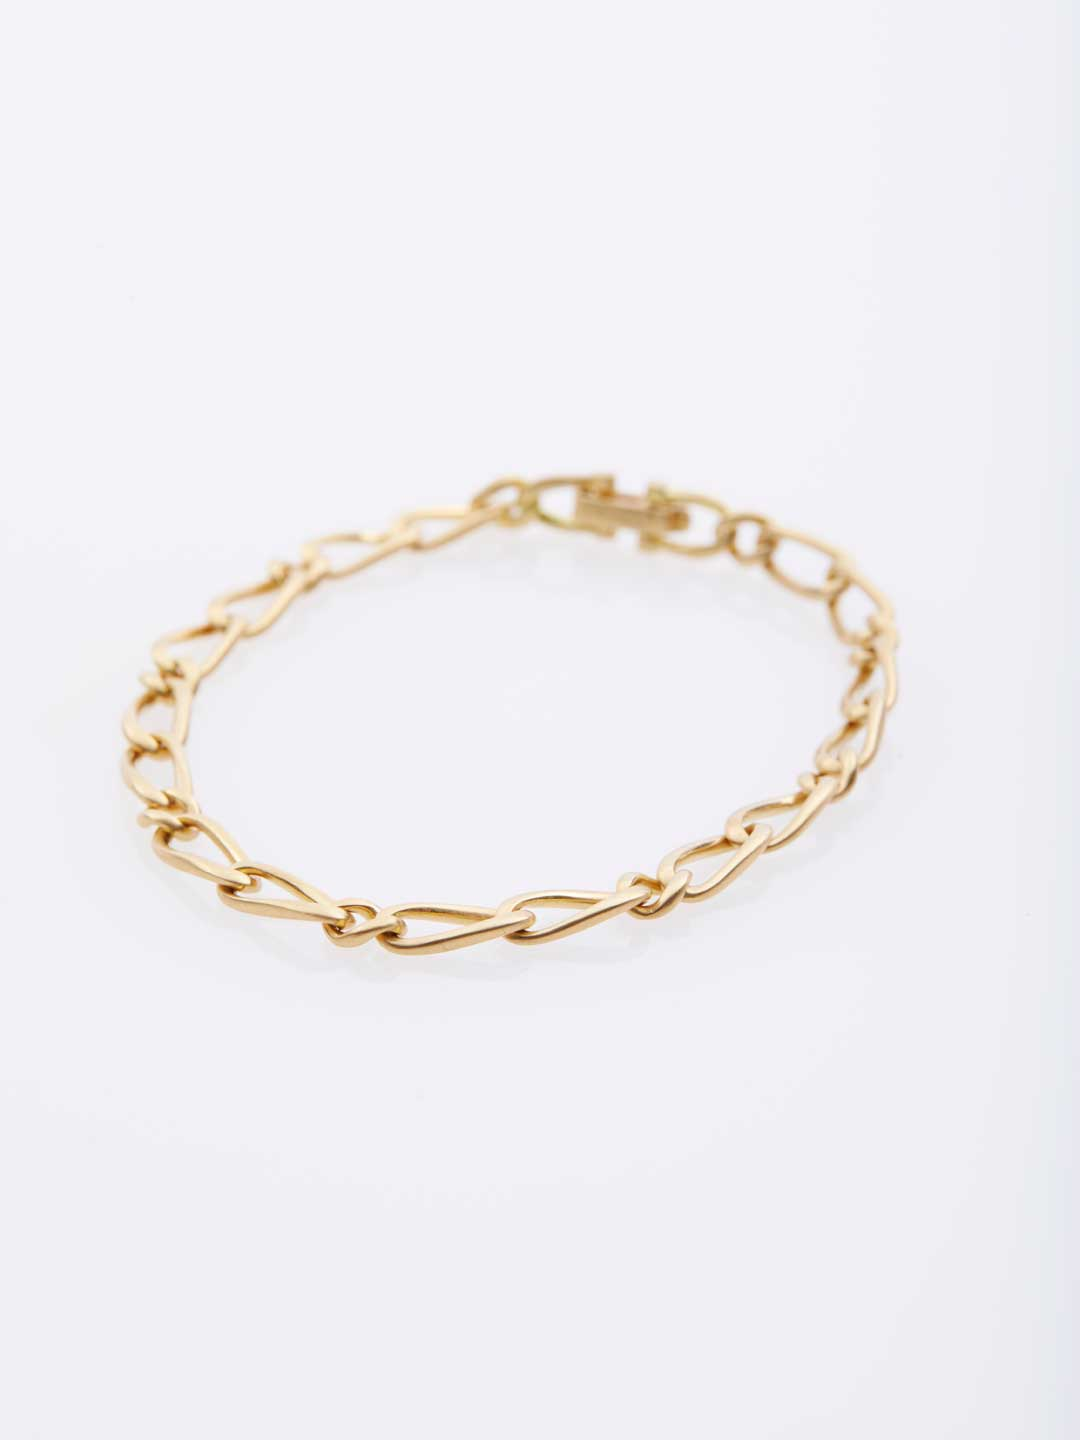 Refine 18K Gold Chain Bracelet / 2S - Yellow Gold